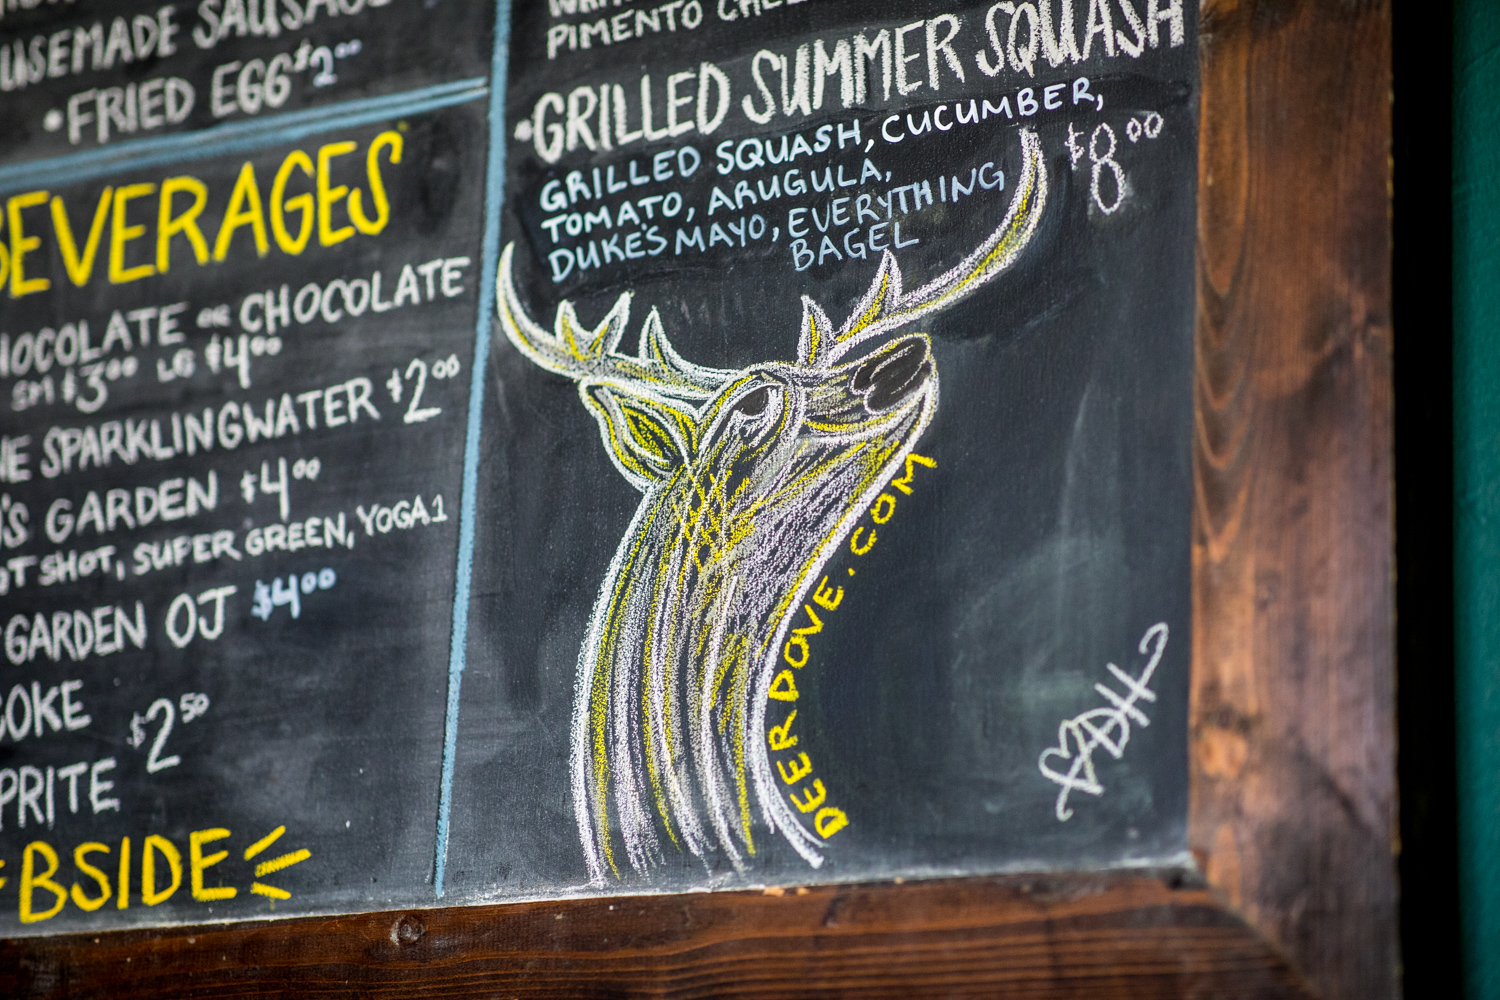 Details from the chalkboard menu at the B-Side Cafe.